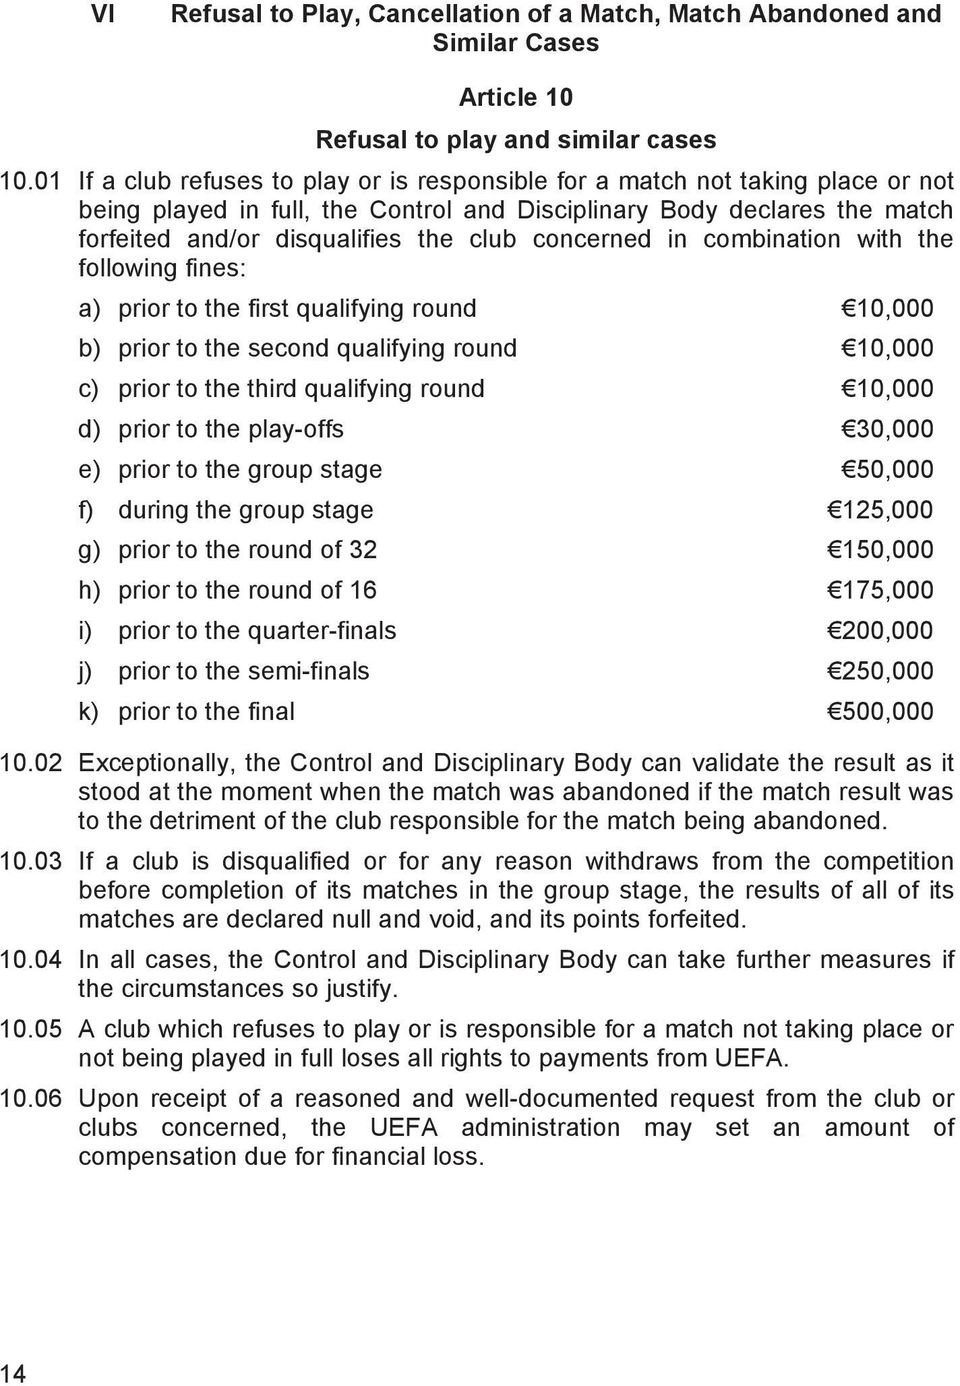 concerned in combination with the following fines: a) prior to the first qualifying round 10,000 b) prior to the second qualifying round 10,000 c) prior to the third qualifying round 10,000 d) prior